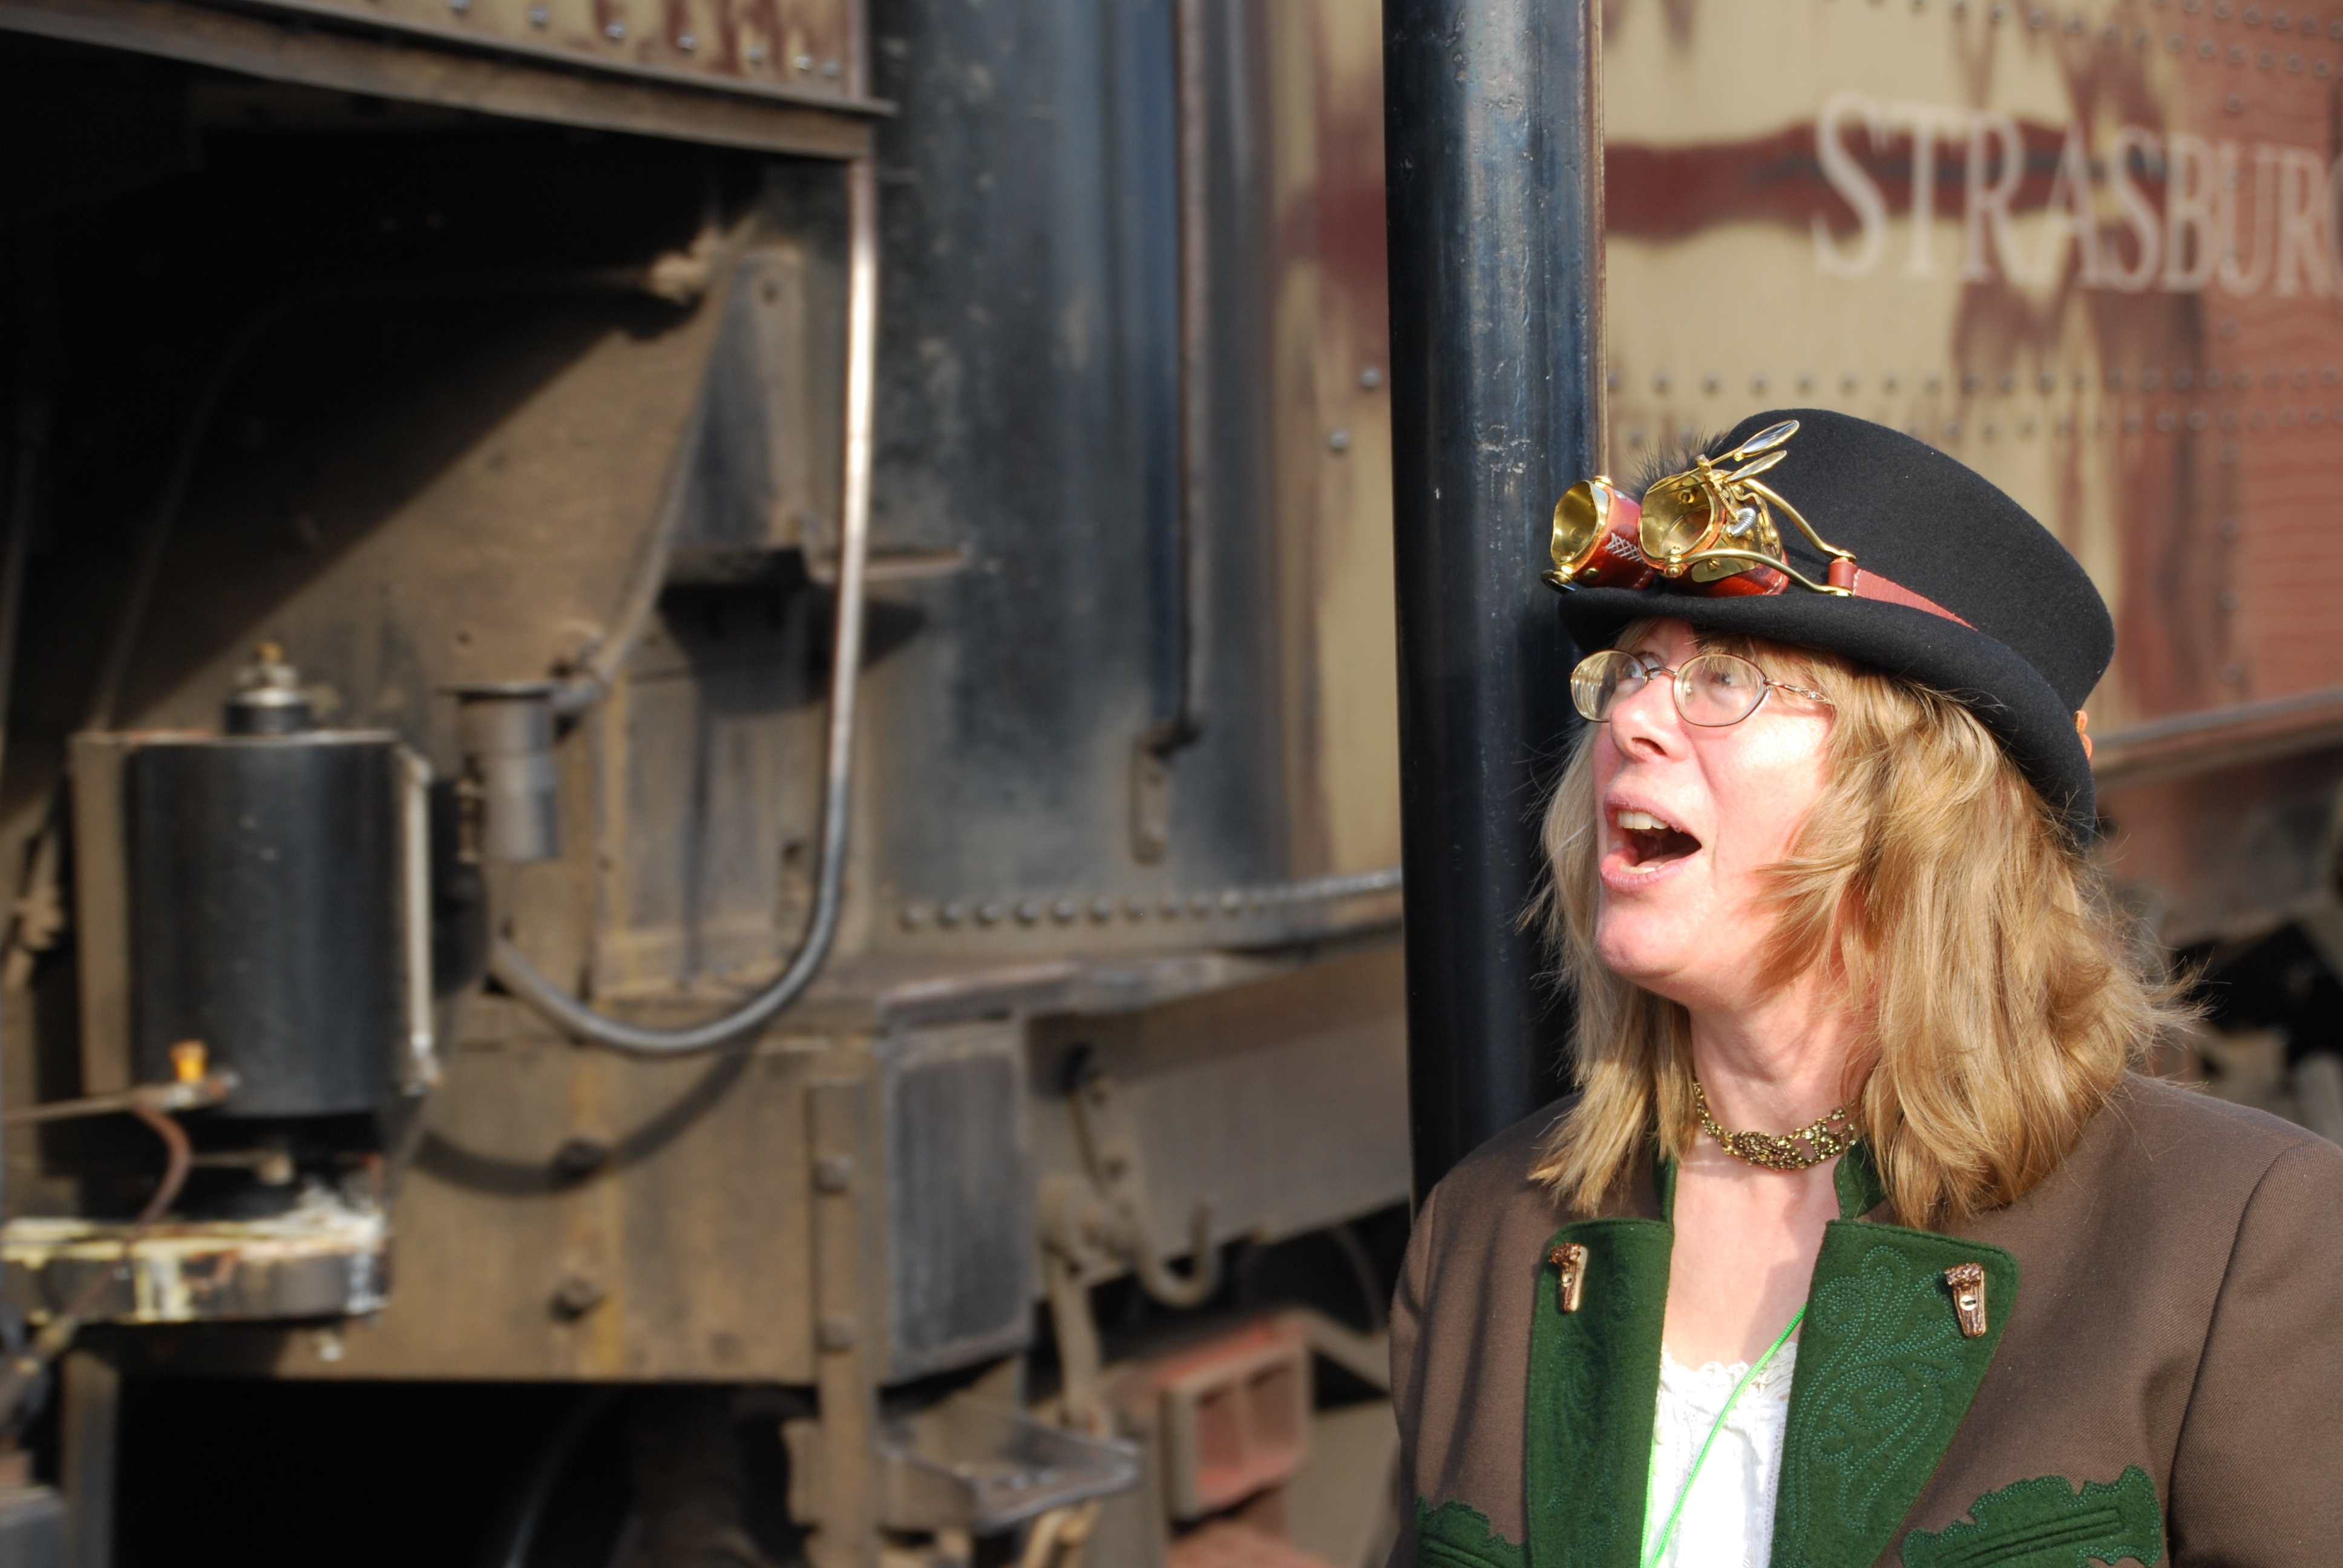 Shelley Adina watches the #90 locomotive pass at Steampunk UnLimited, Strasburg, PA